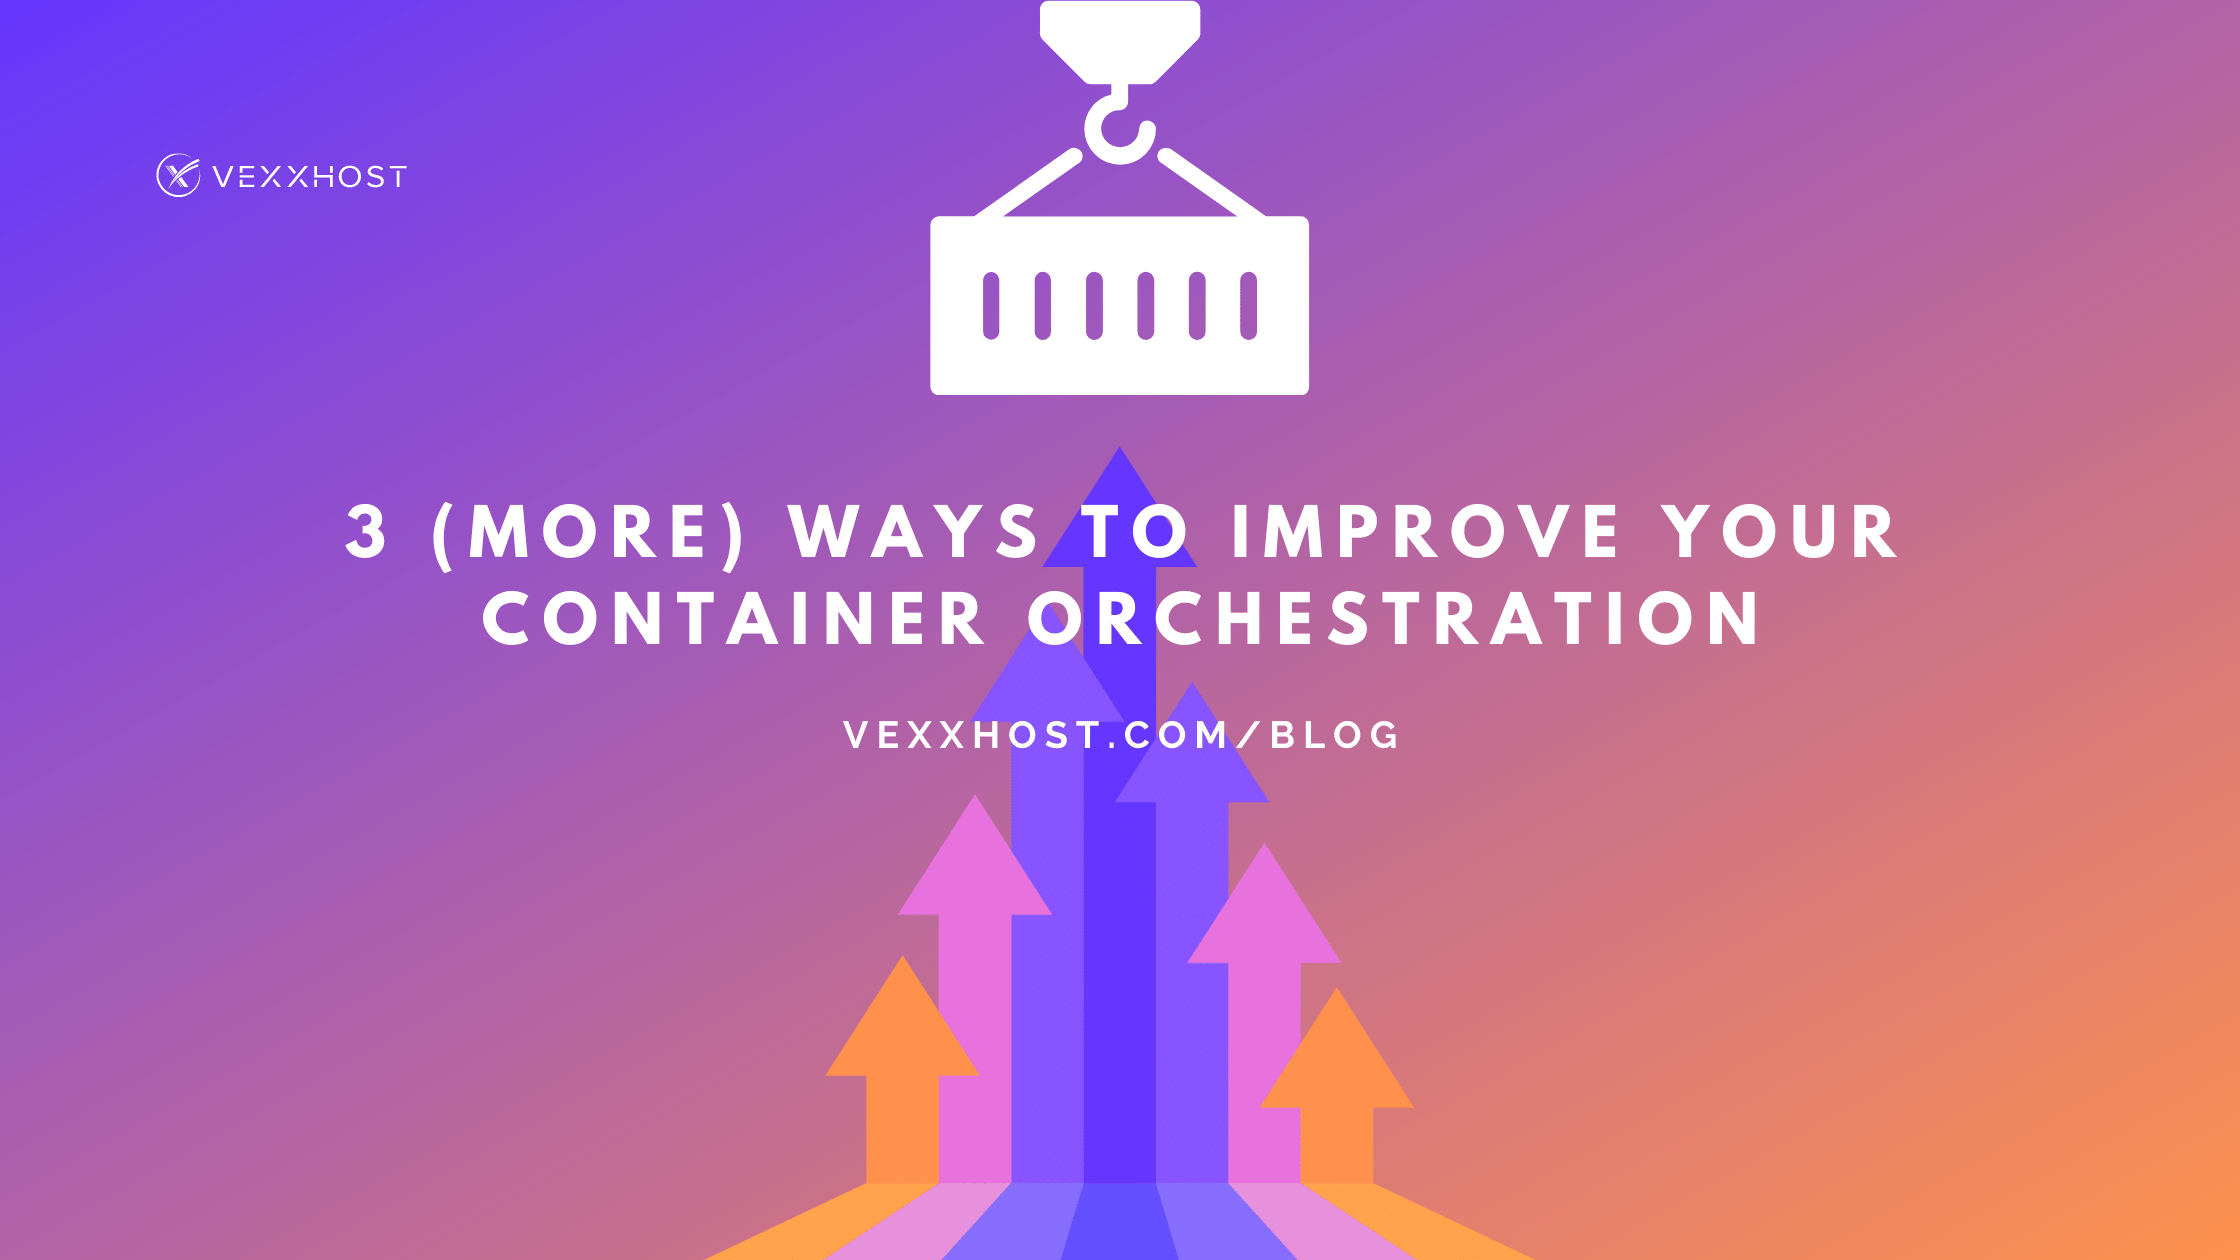 3 (More) Ways To Improve Your Container Orchestration